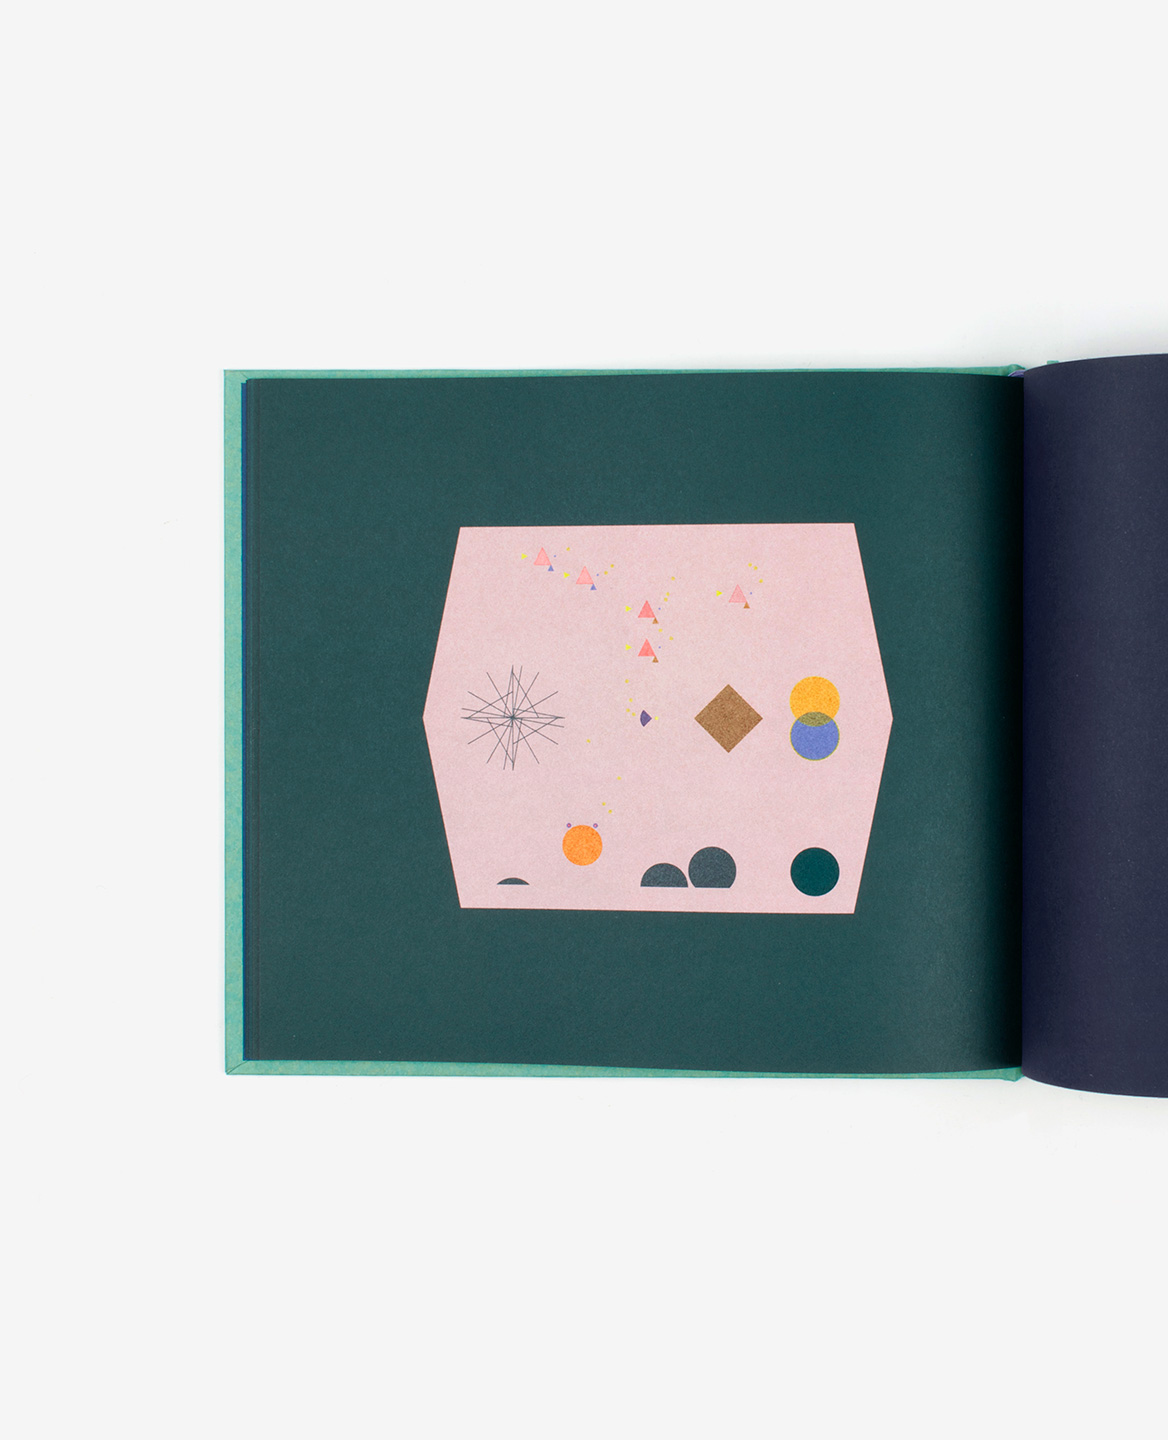 Red hexagonal fish bowl in the book Aquarium by Fanette Mellier published by Éditions du livre